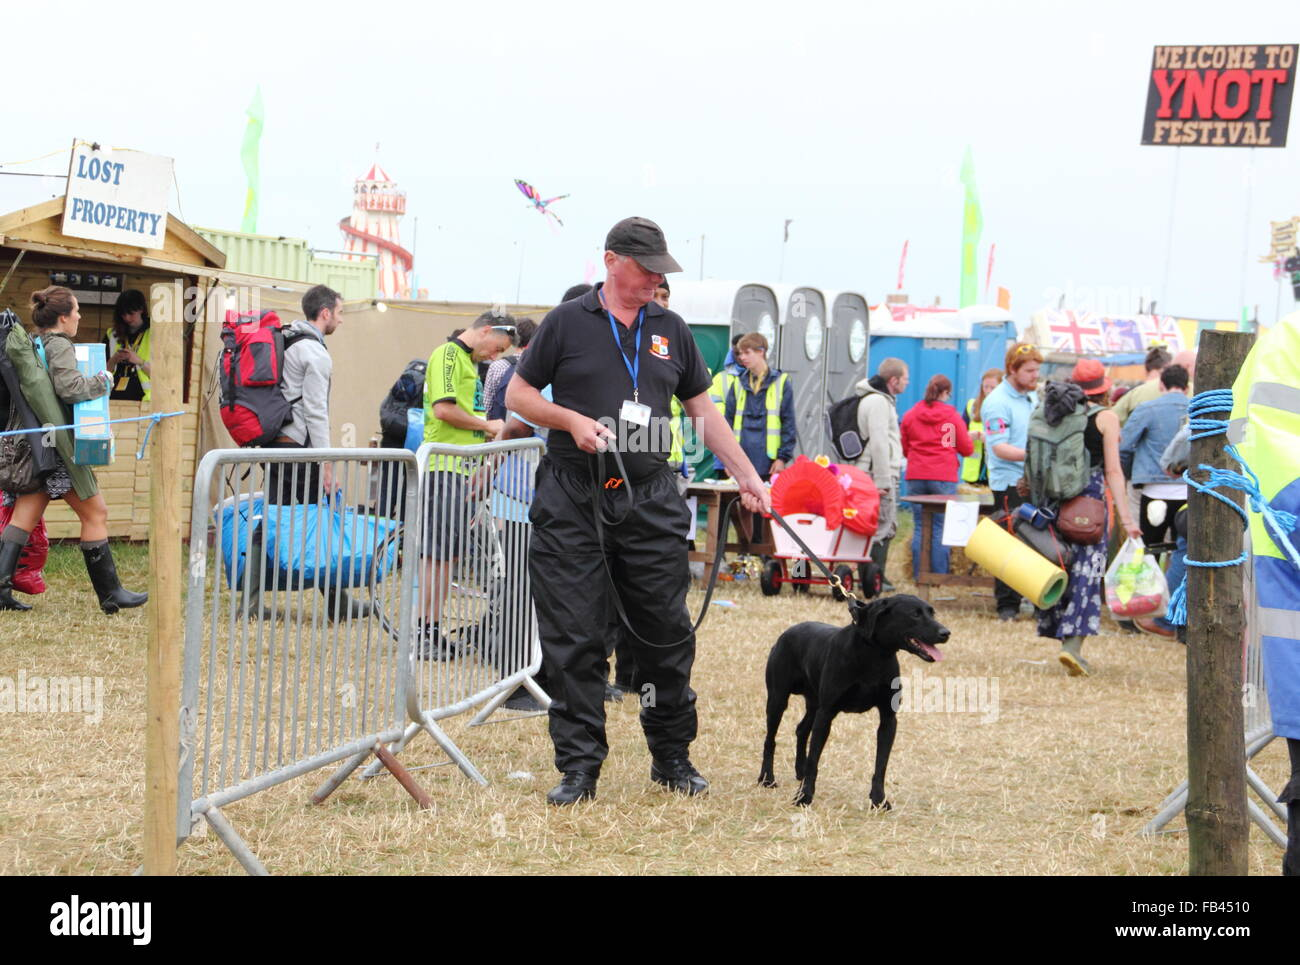 A sniffer dog and its handler search for illegal drugs during routine security checks at the Y Not music festival's - Stock Image